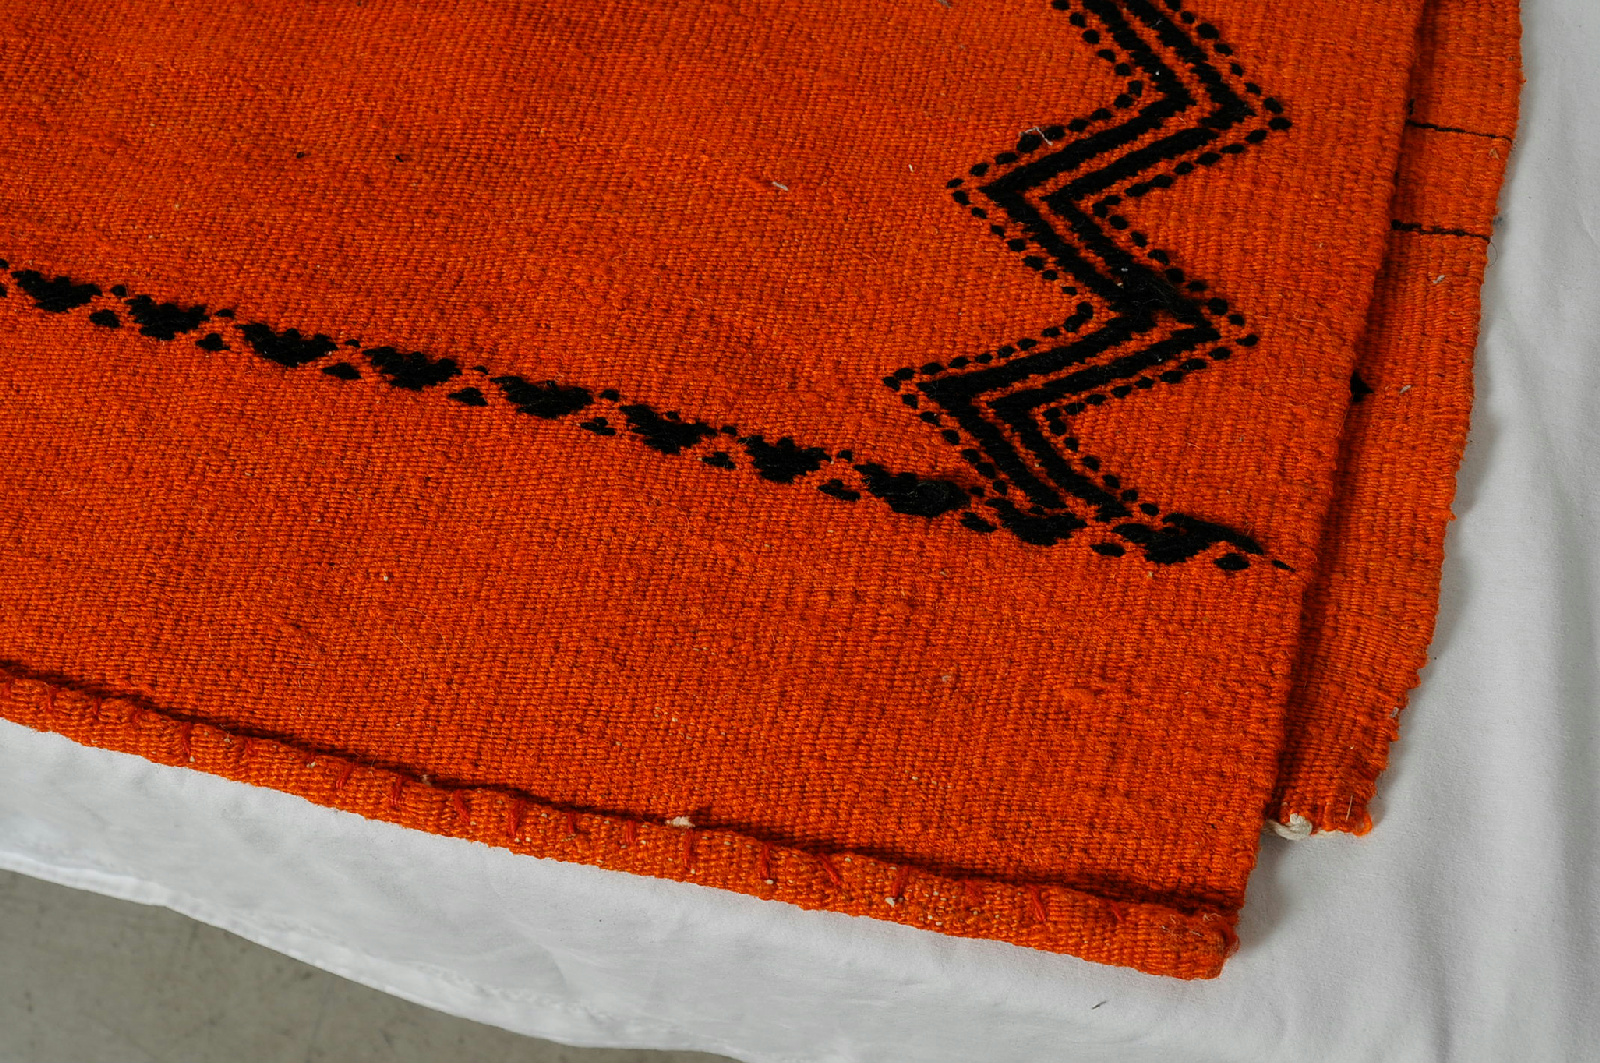 Southwestern Hand Knotted Woven Orange Wool Blend Area Rug